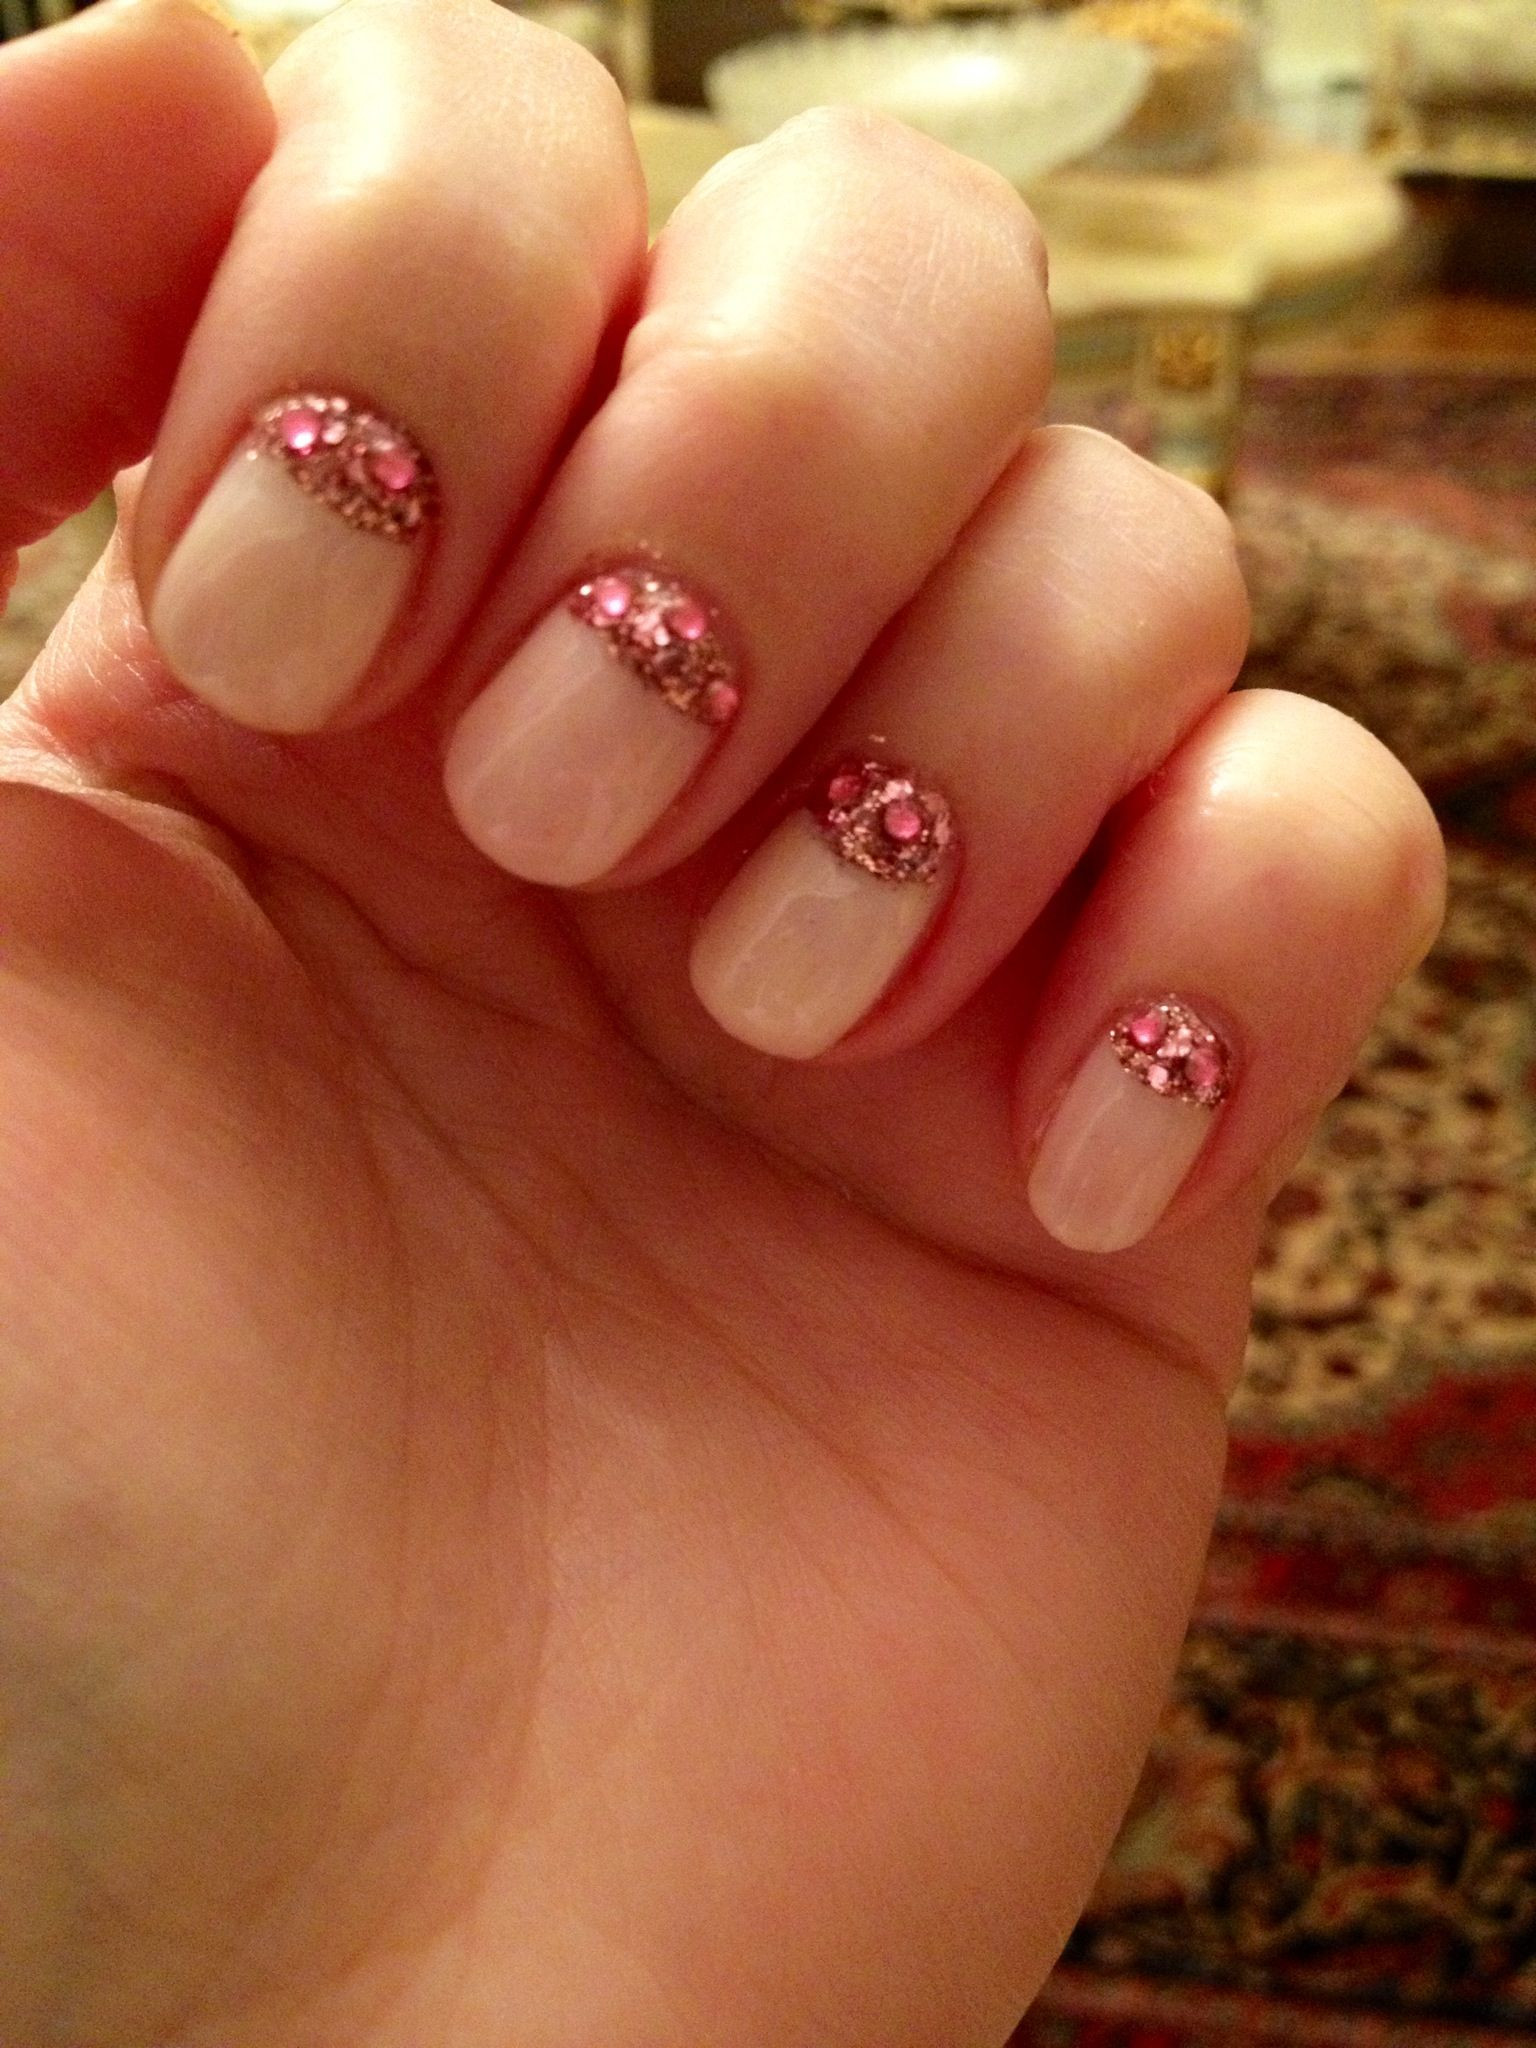 pink moon nails with glitter